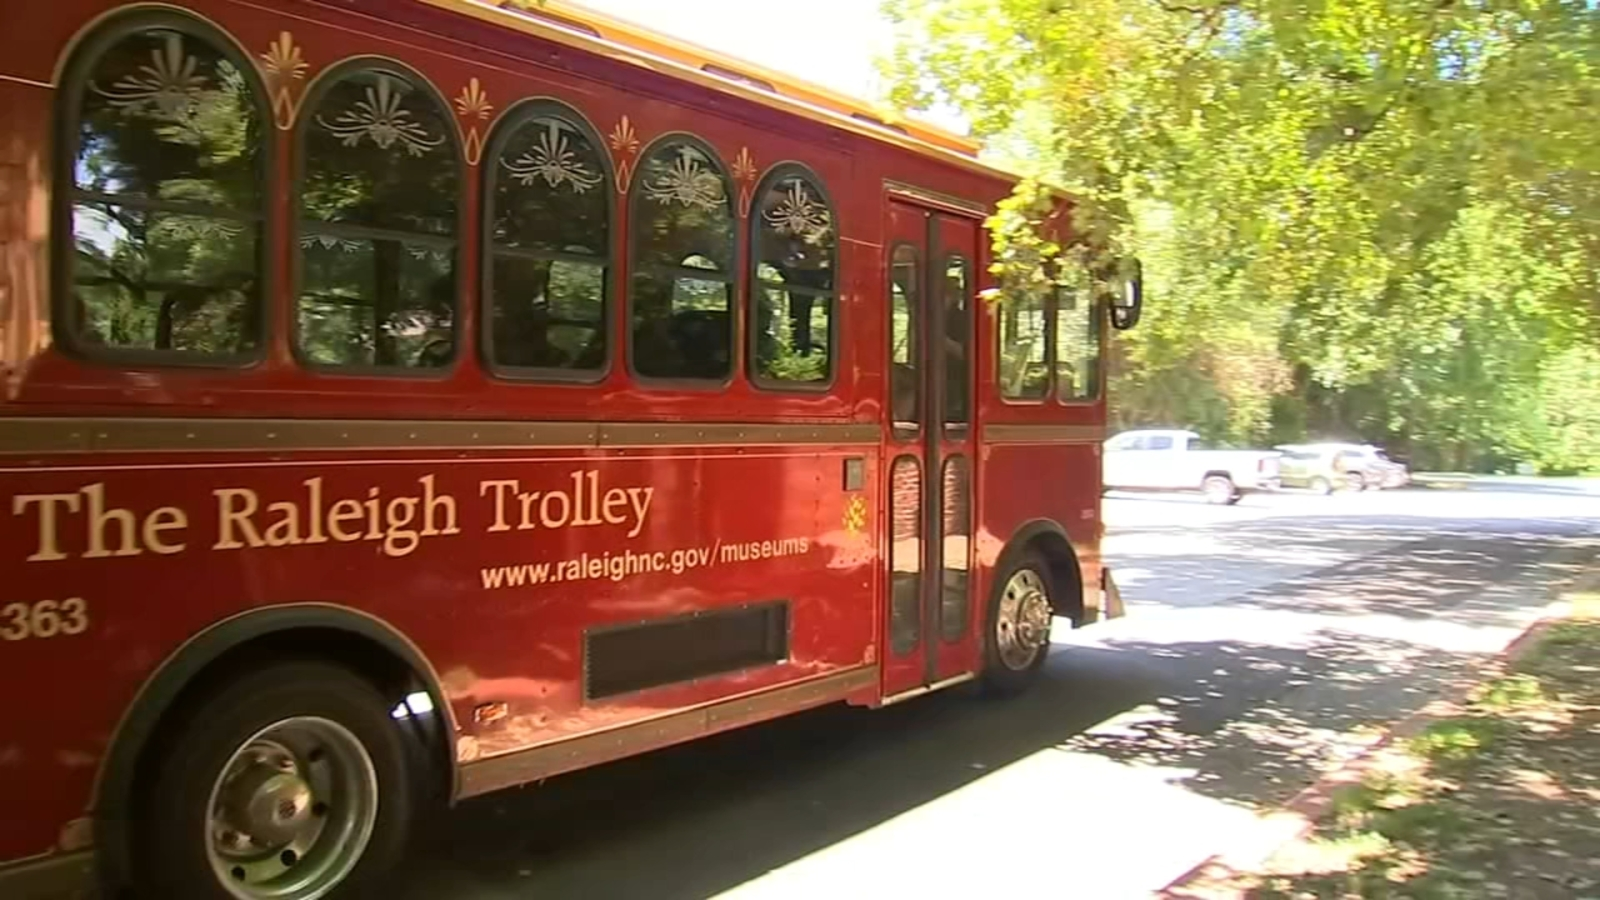 Pride Ride: Historic Raleigh Trolley Pride Ride highlights key safe locations in historic Raleigh